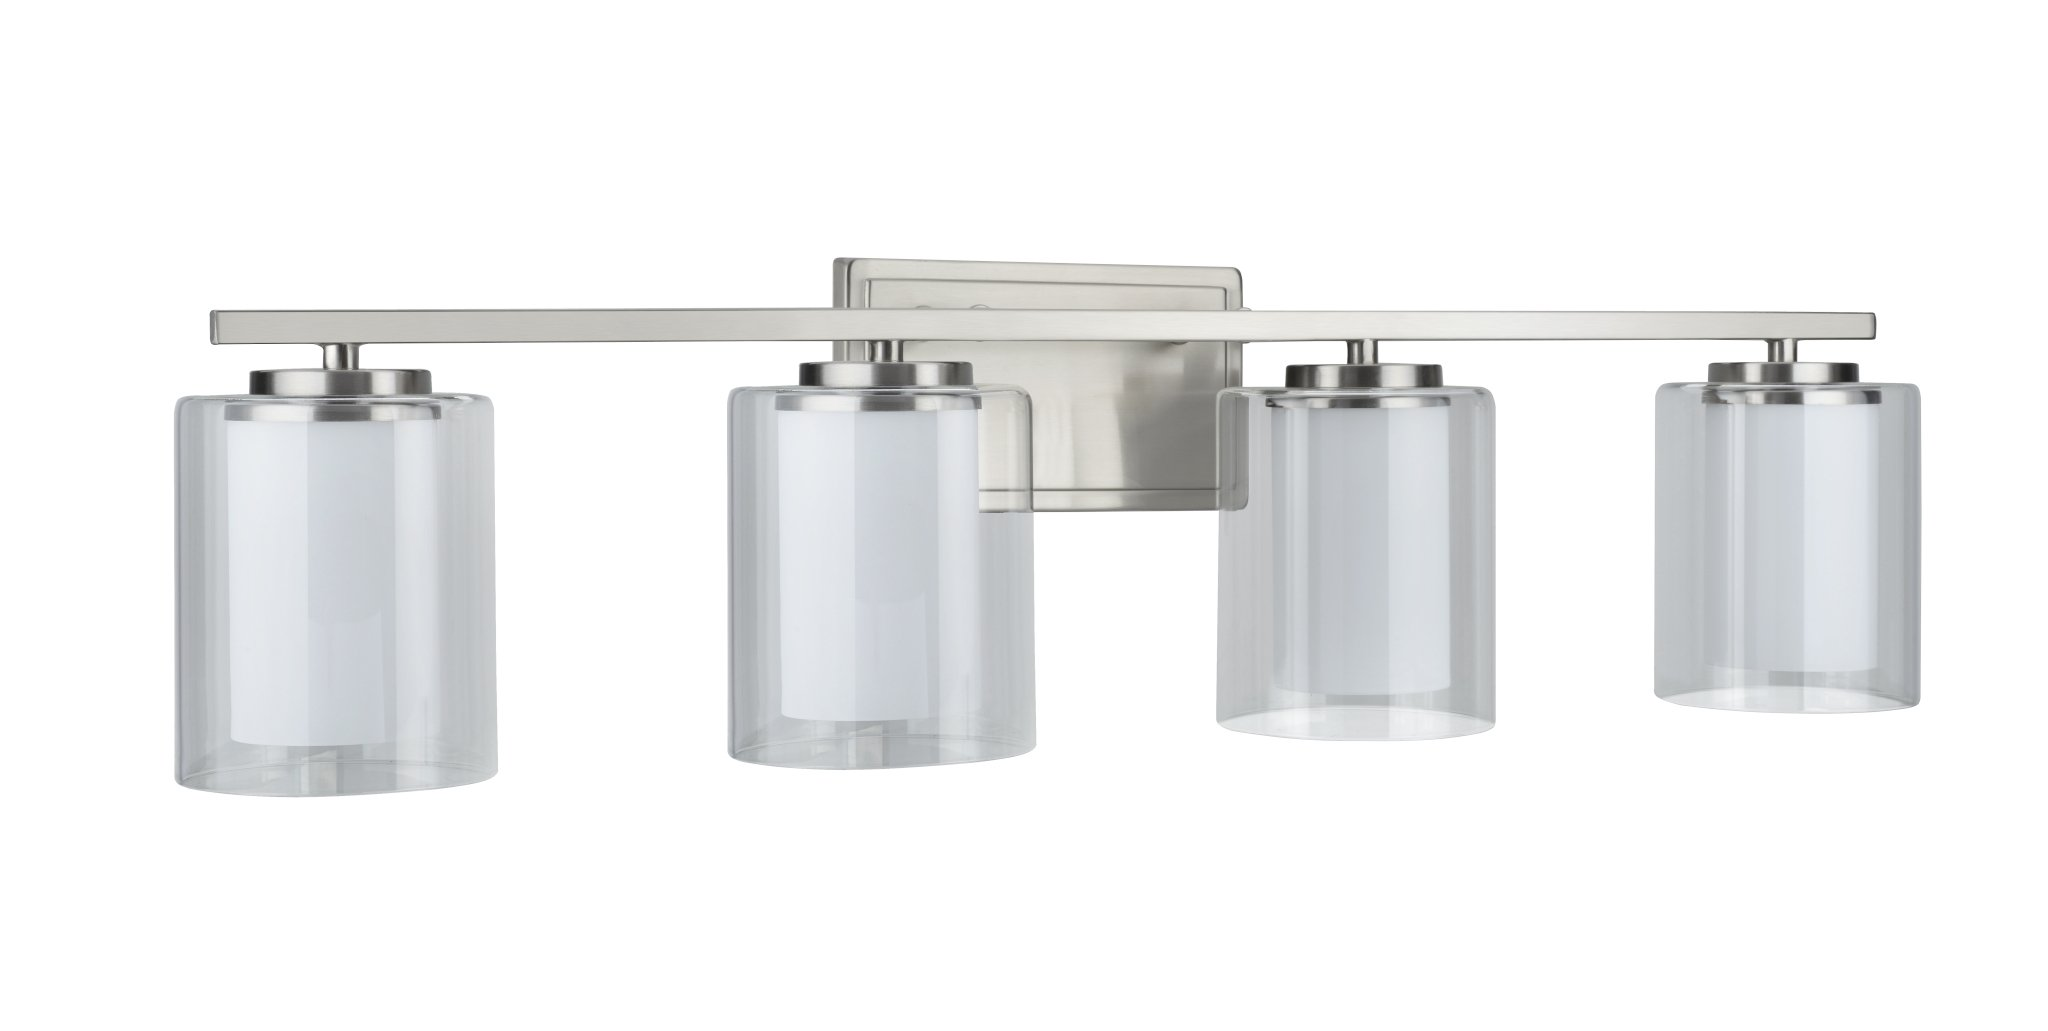 Aspen Creative 62104, Four-Light Metal Bathroom Vanity Wall Light Fixture, 32'' Wide, Transitional Design in Satin Nickel with Clear Glass Shade by Aspen Creative (Image #3)